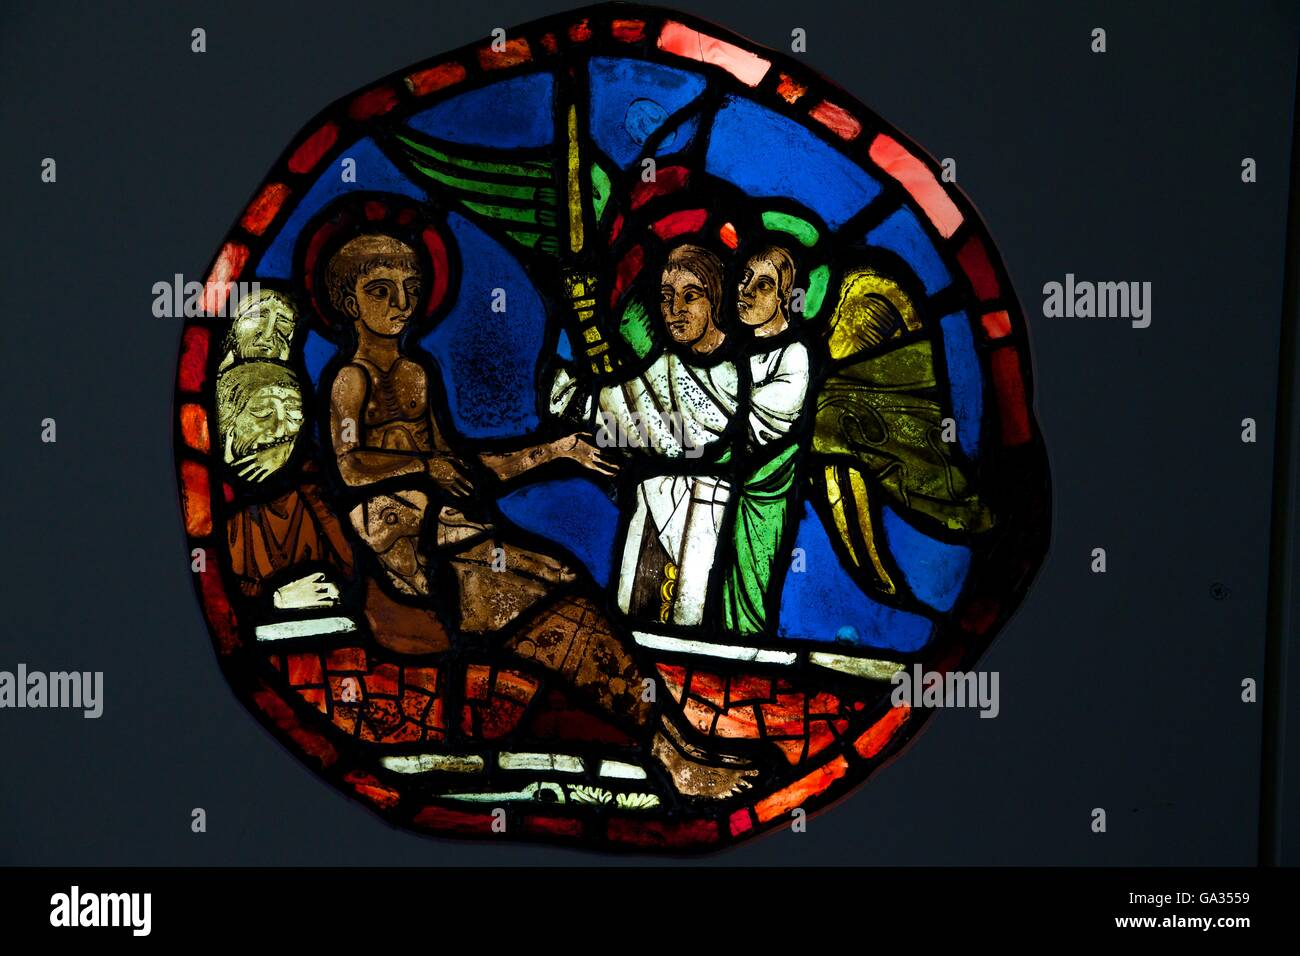 St Vincent Consoled by Angels, 13th century french stained glass, Ely Cathedral Museum of Stained Glass, Cambridgeshire - Stock Image